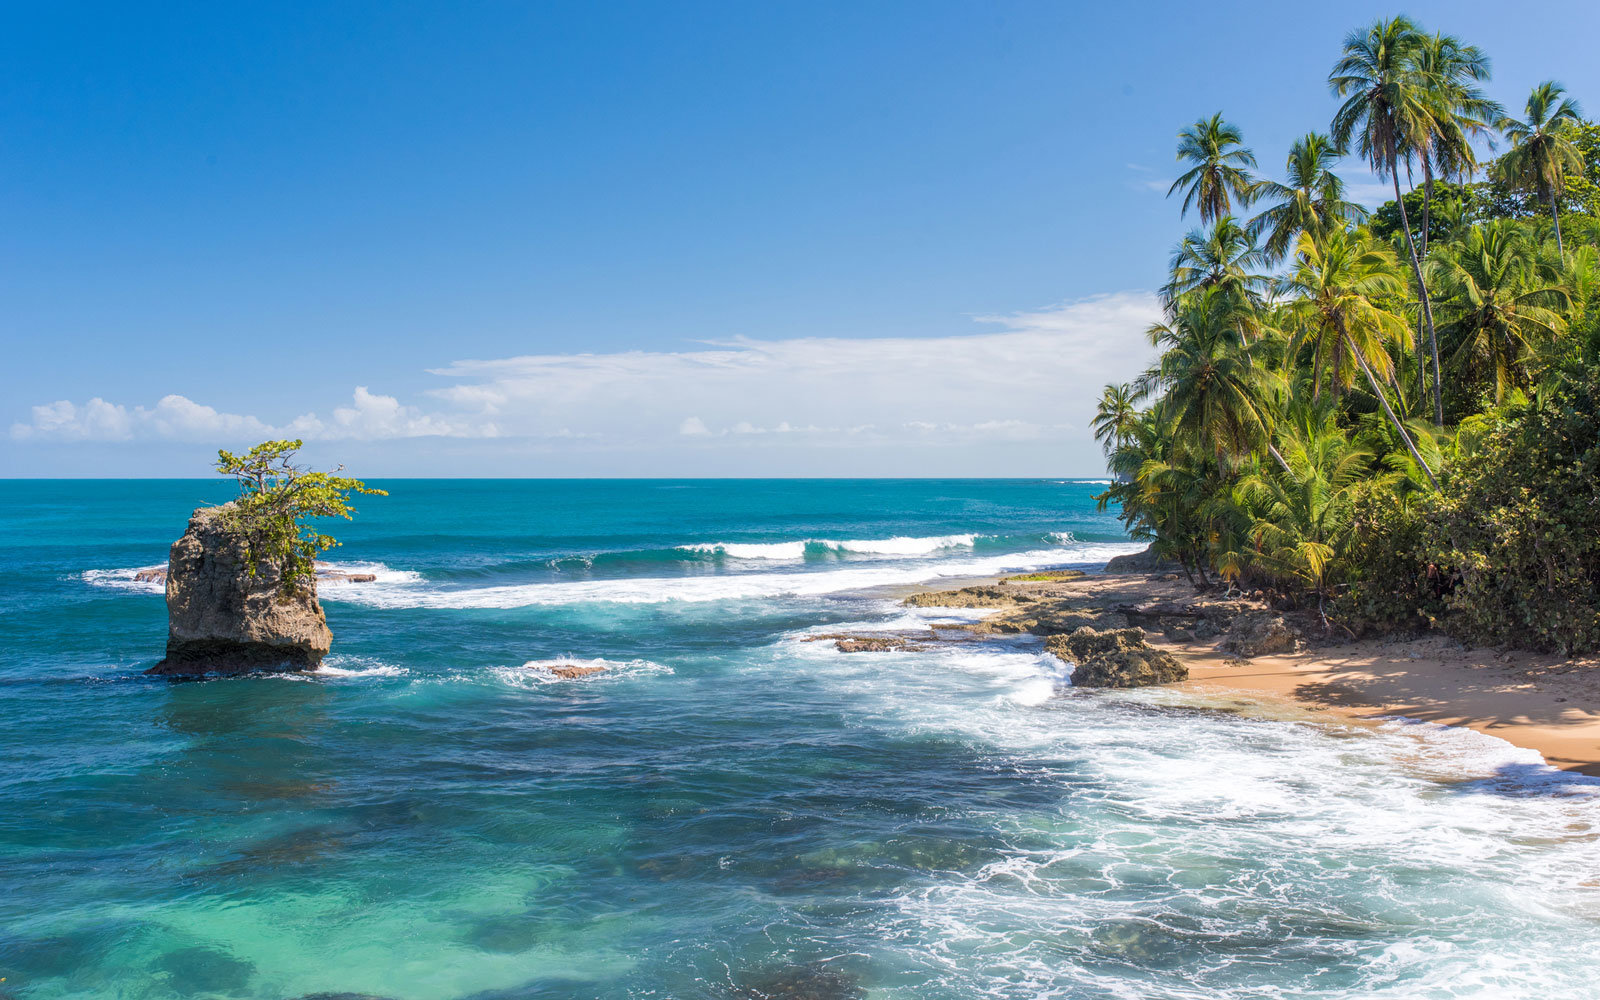 Costa Rica Real Estate Jaco Mail: Flights To Costa Rica On Sale For $275 Round-trip